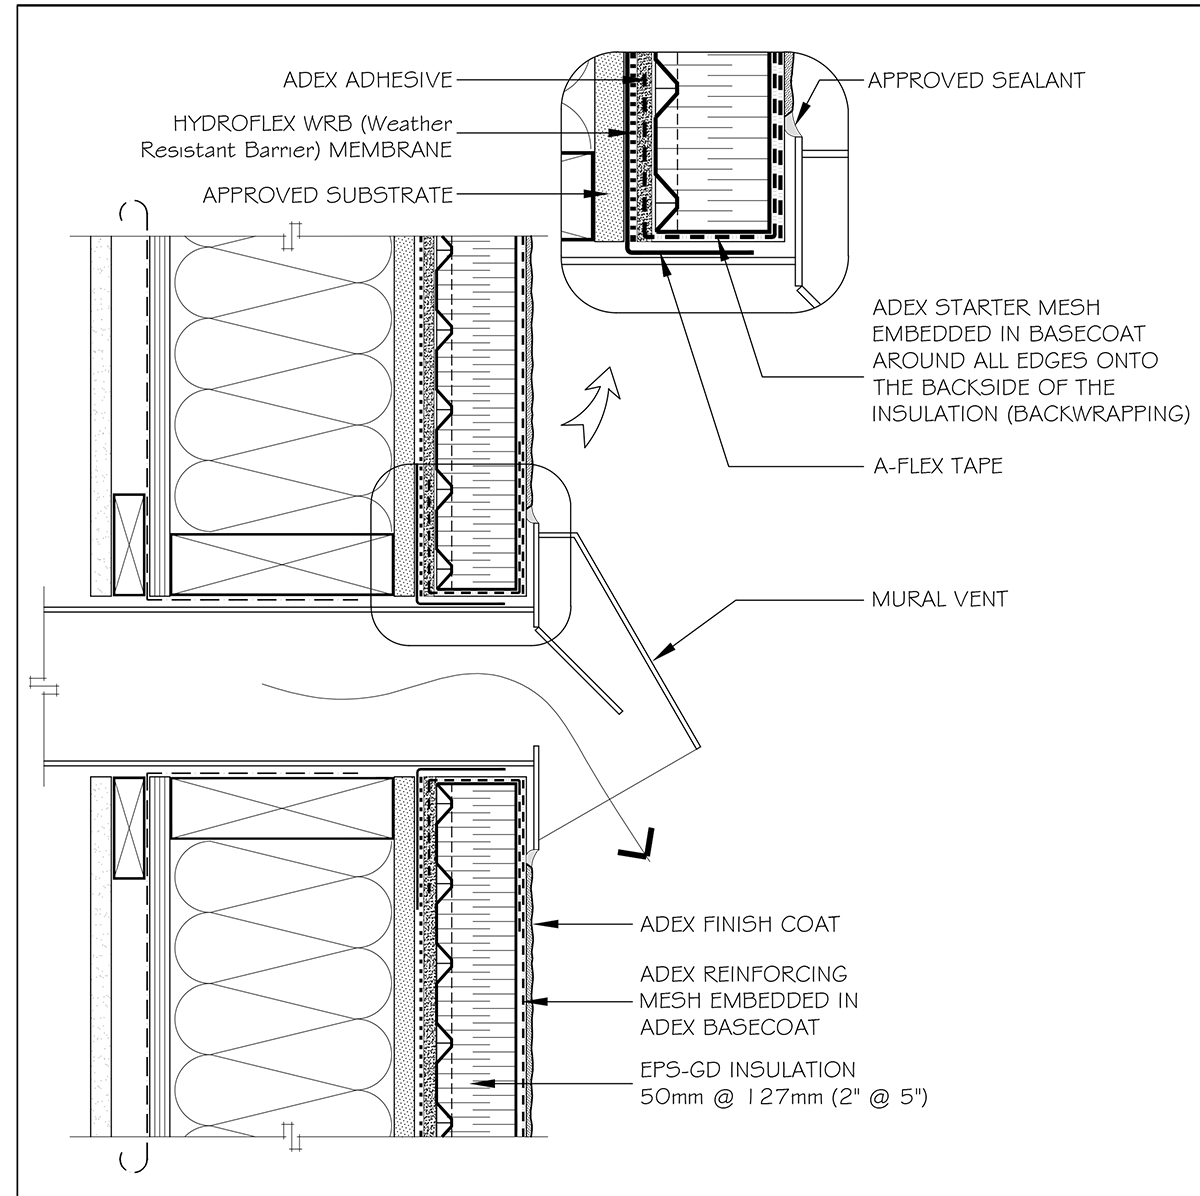 Adex Rs T30 Wall Penetrations Schematic